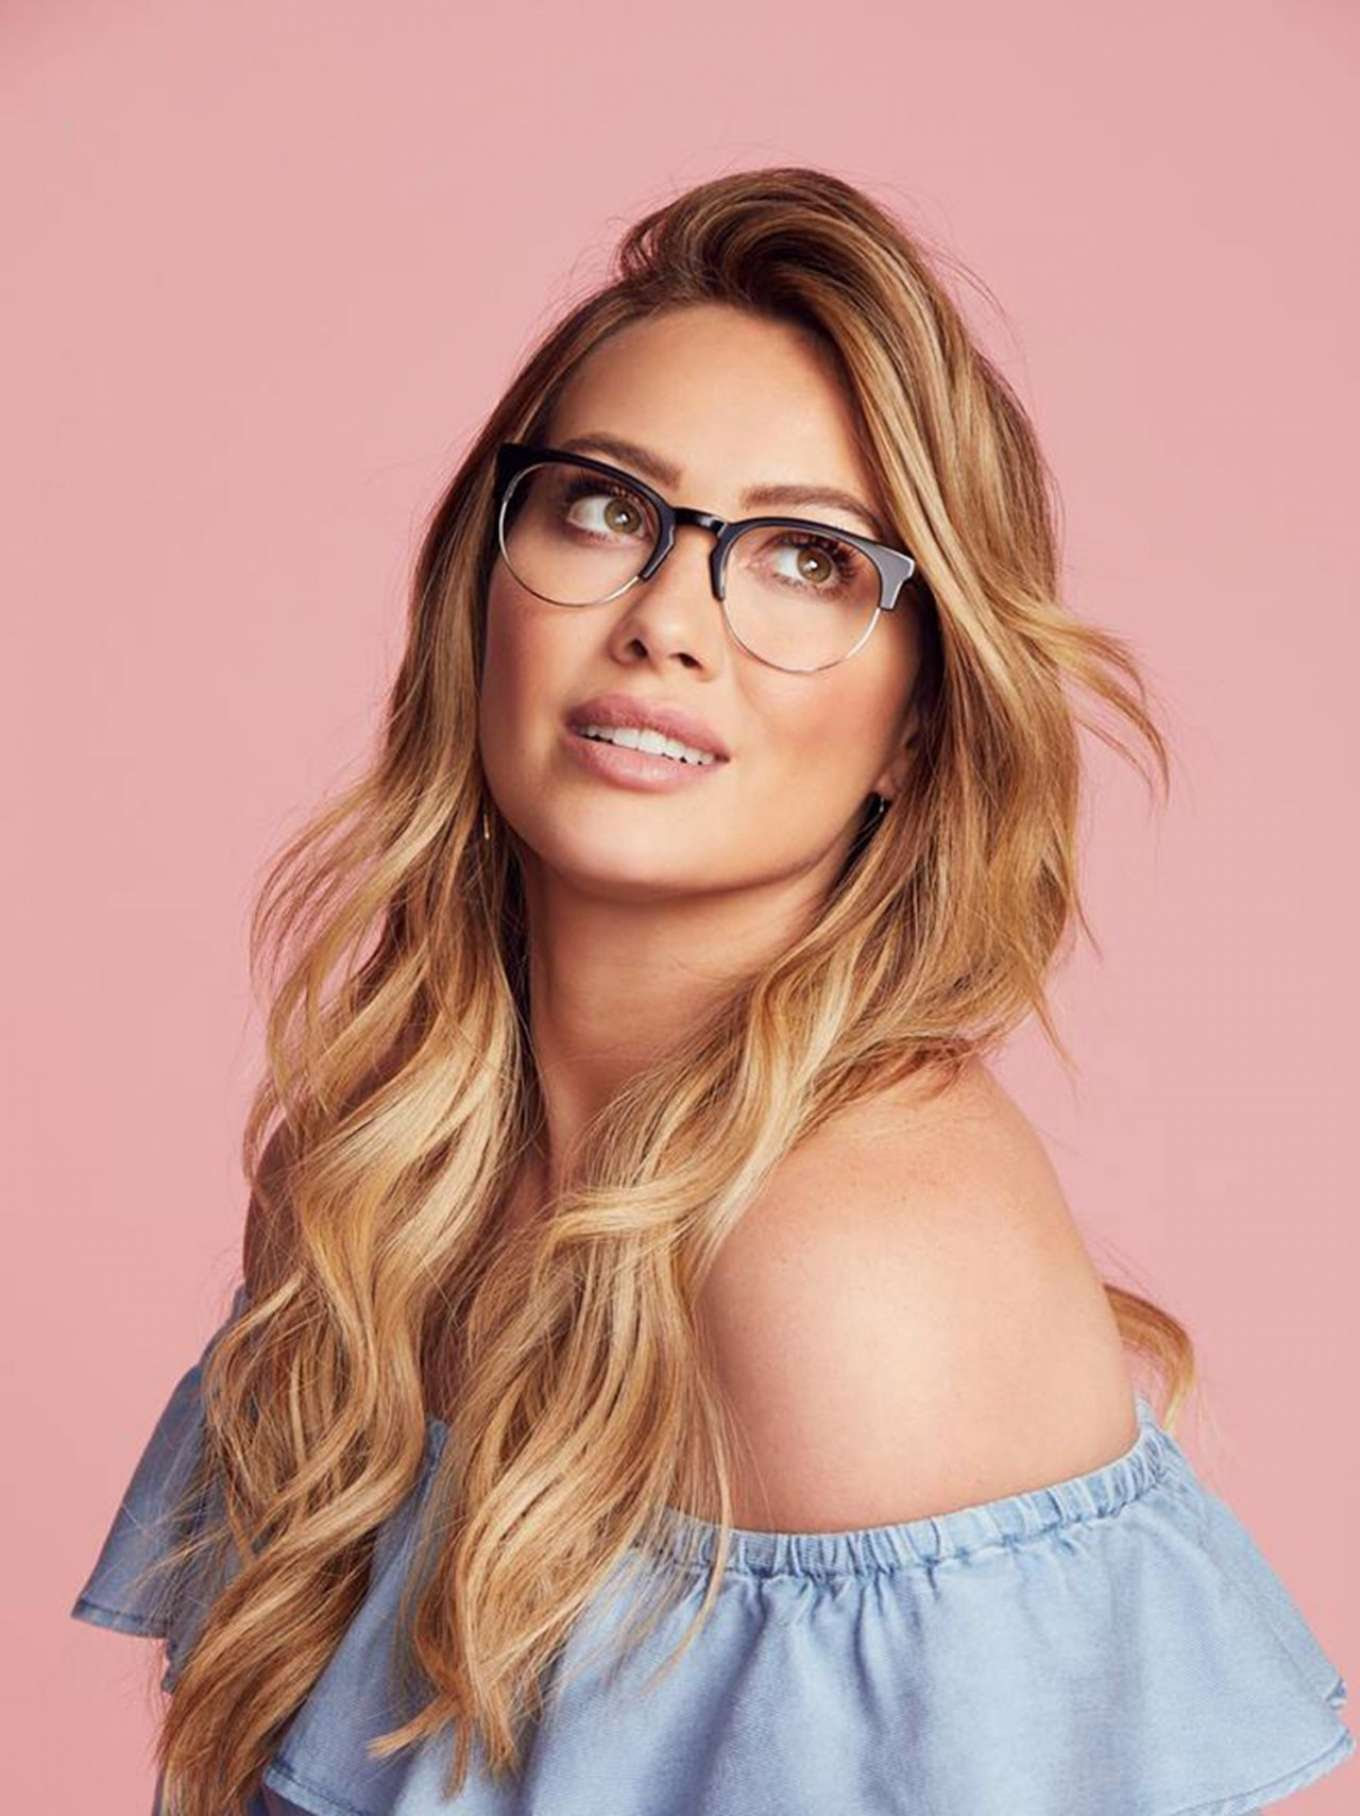 Hilary Duff – Hilary Duff Collection With GlassesUSA.com 2018